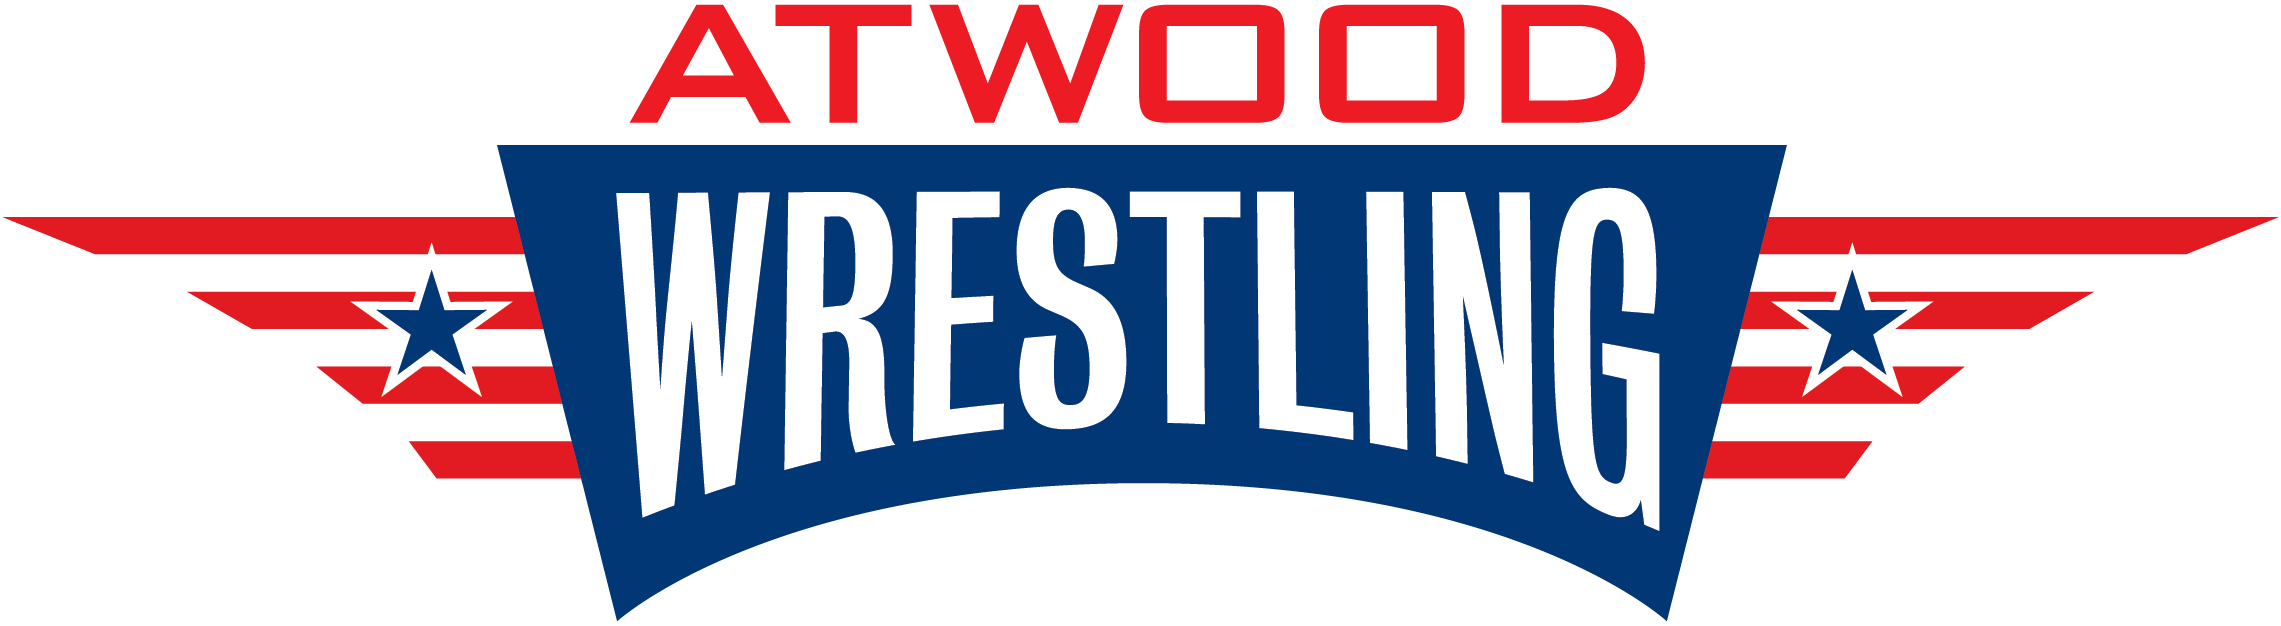 Atwood Wrestling